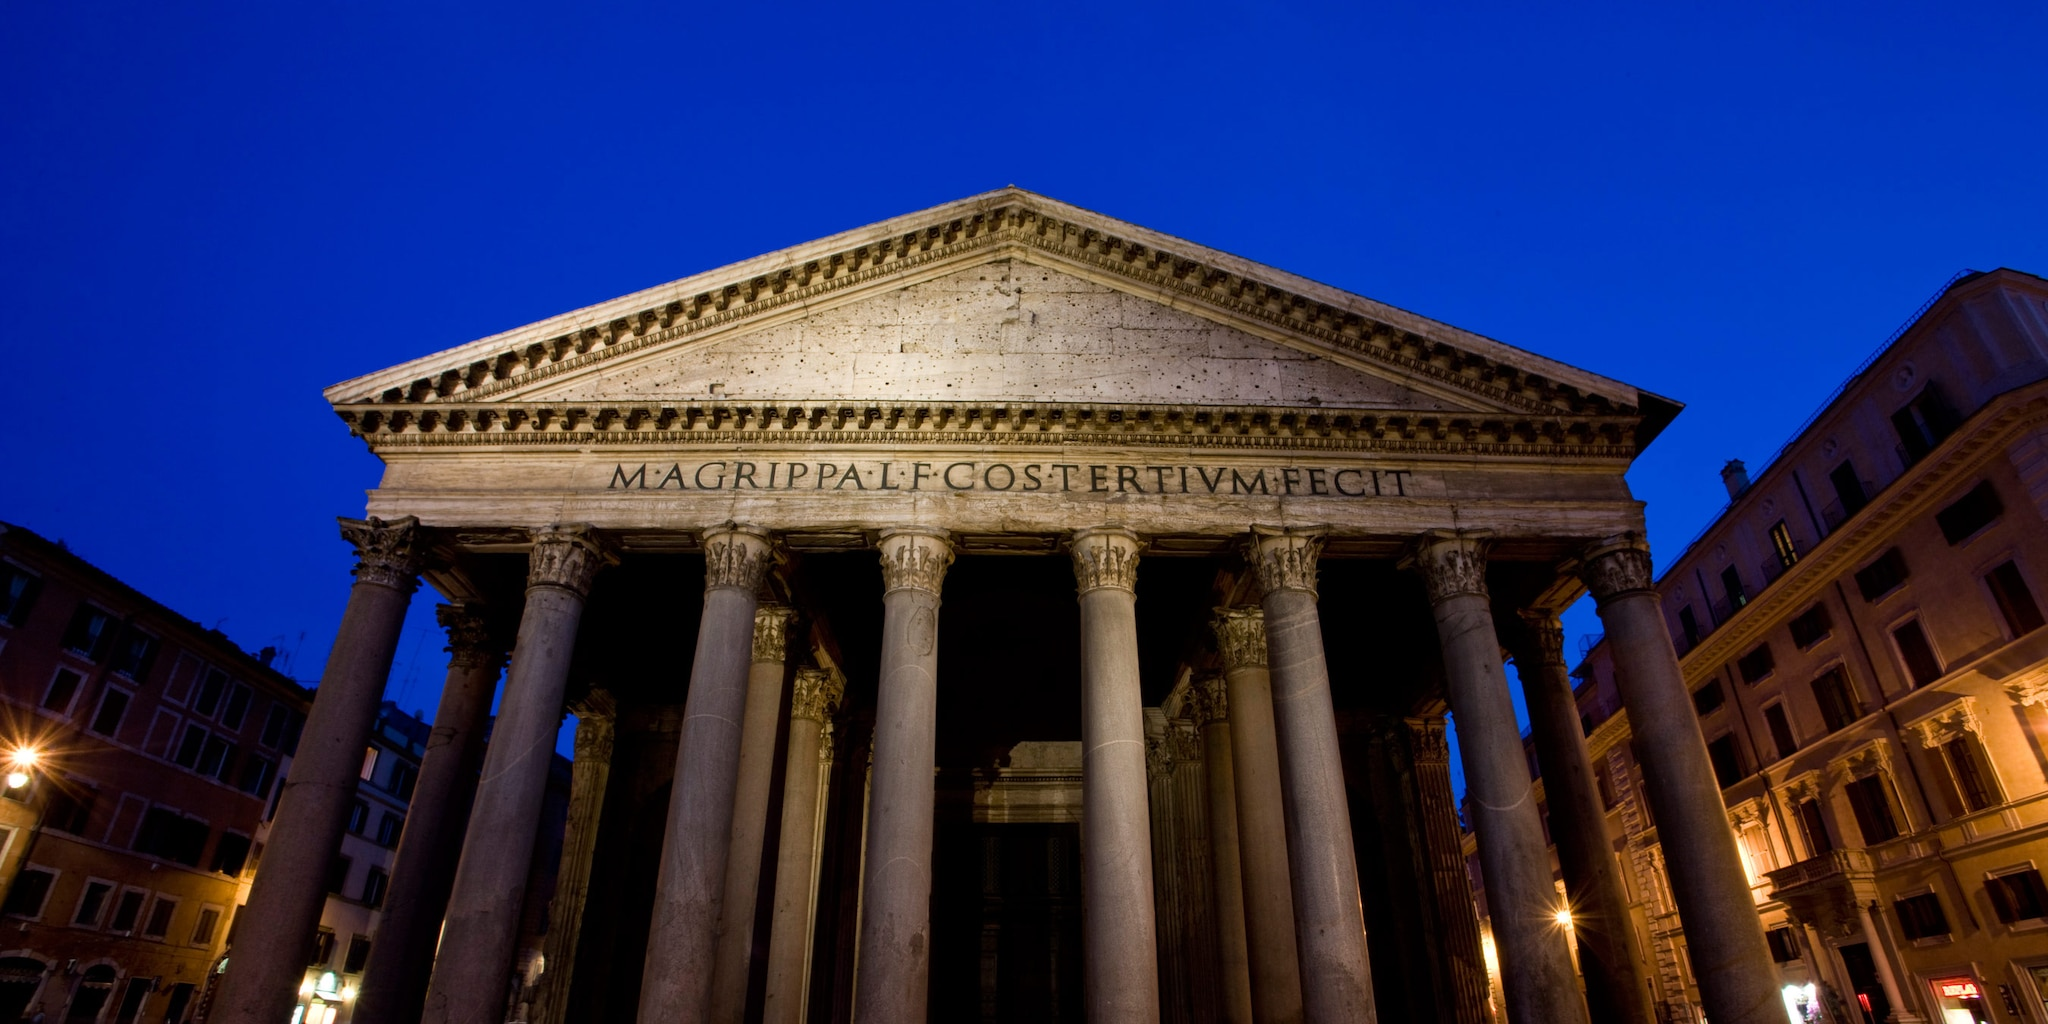 The Roman Pantheon at night